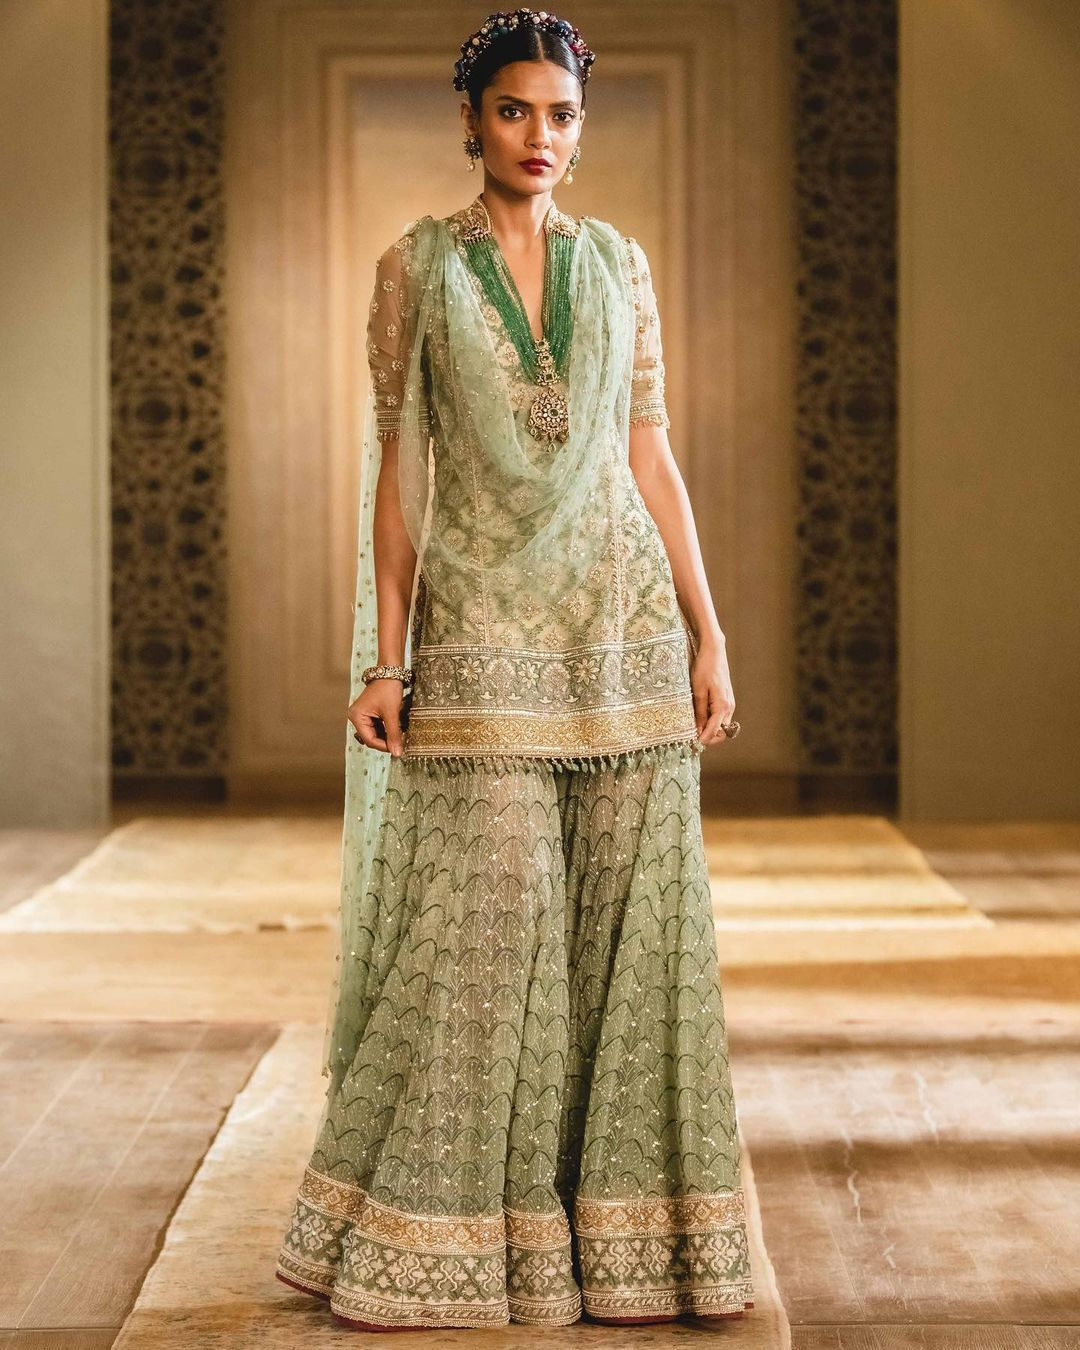 110 Indian Wedding Guest Outfits 2021 Ideas Indian Fashion Dresses Designer Dresses Indian Indian Outfits